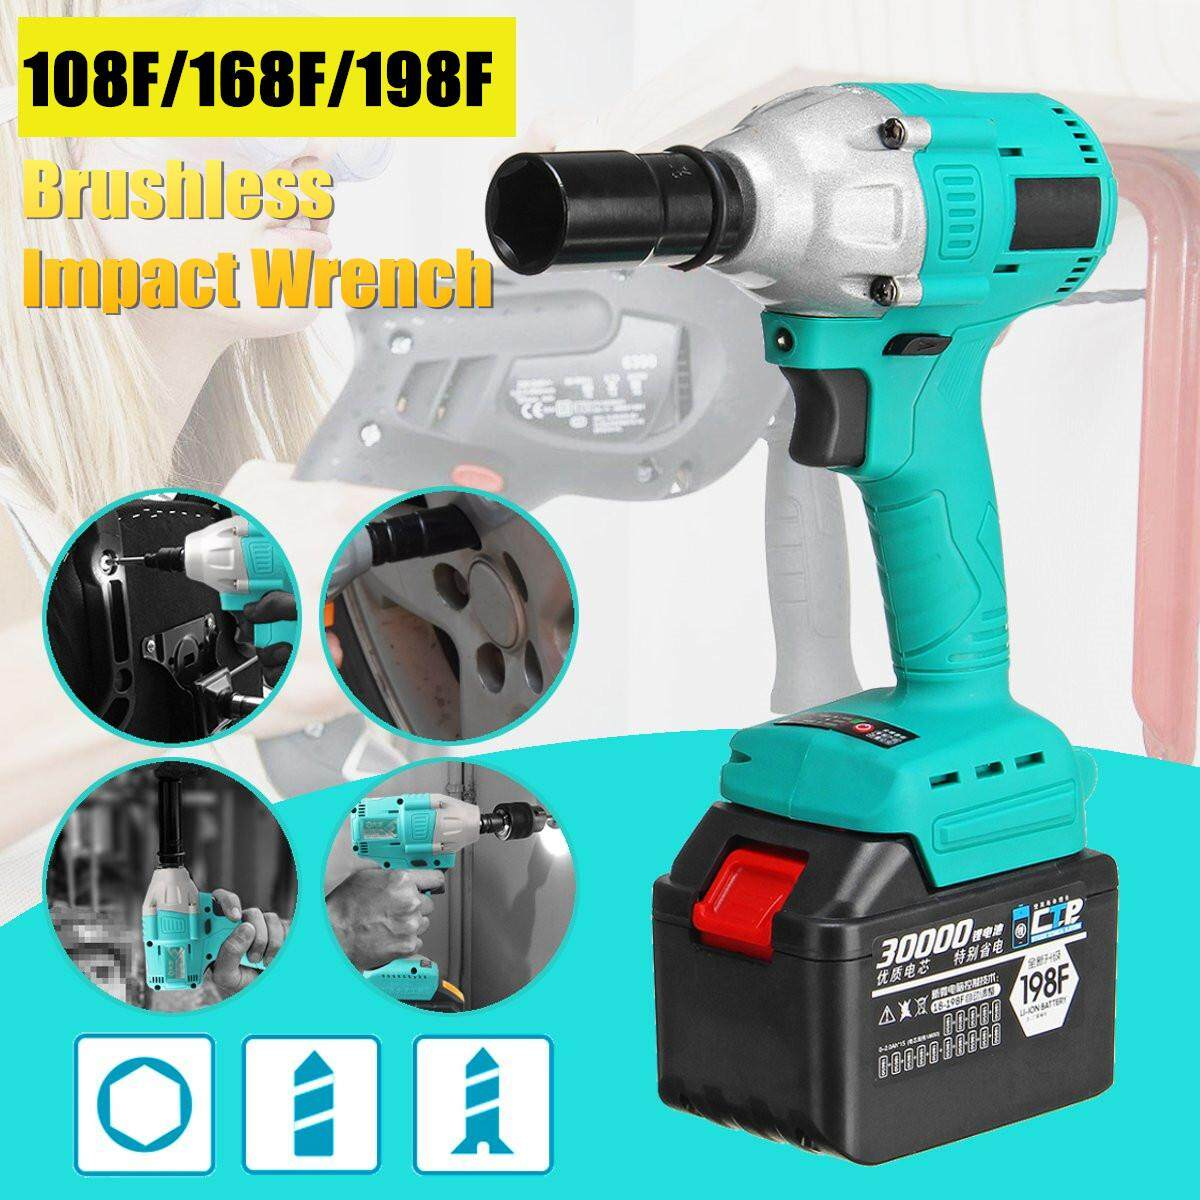 108F/168F/198F Brushless Impact Wrench 1 Battery 1 Charger Lithium-Ion